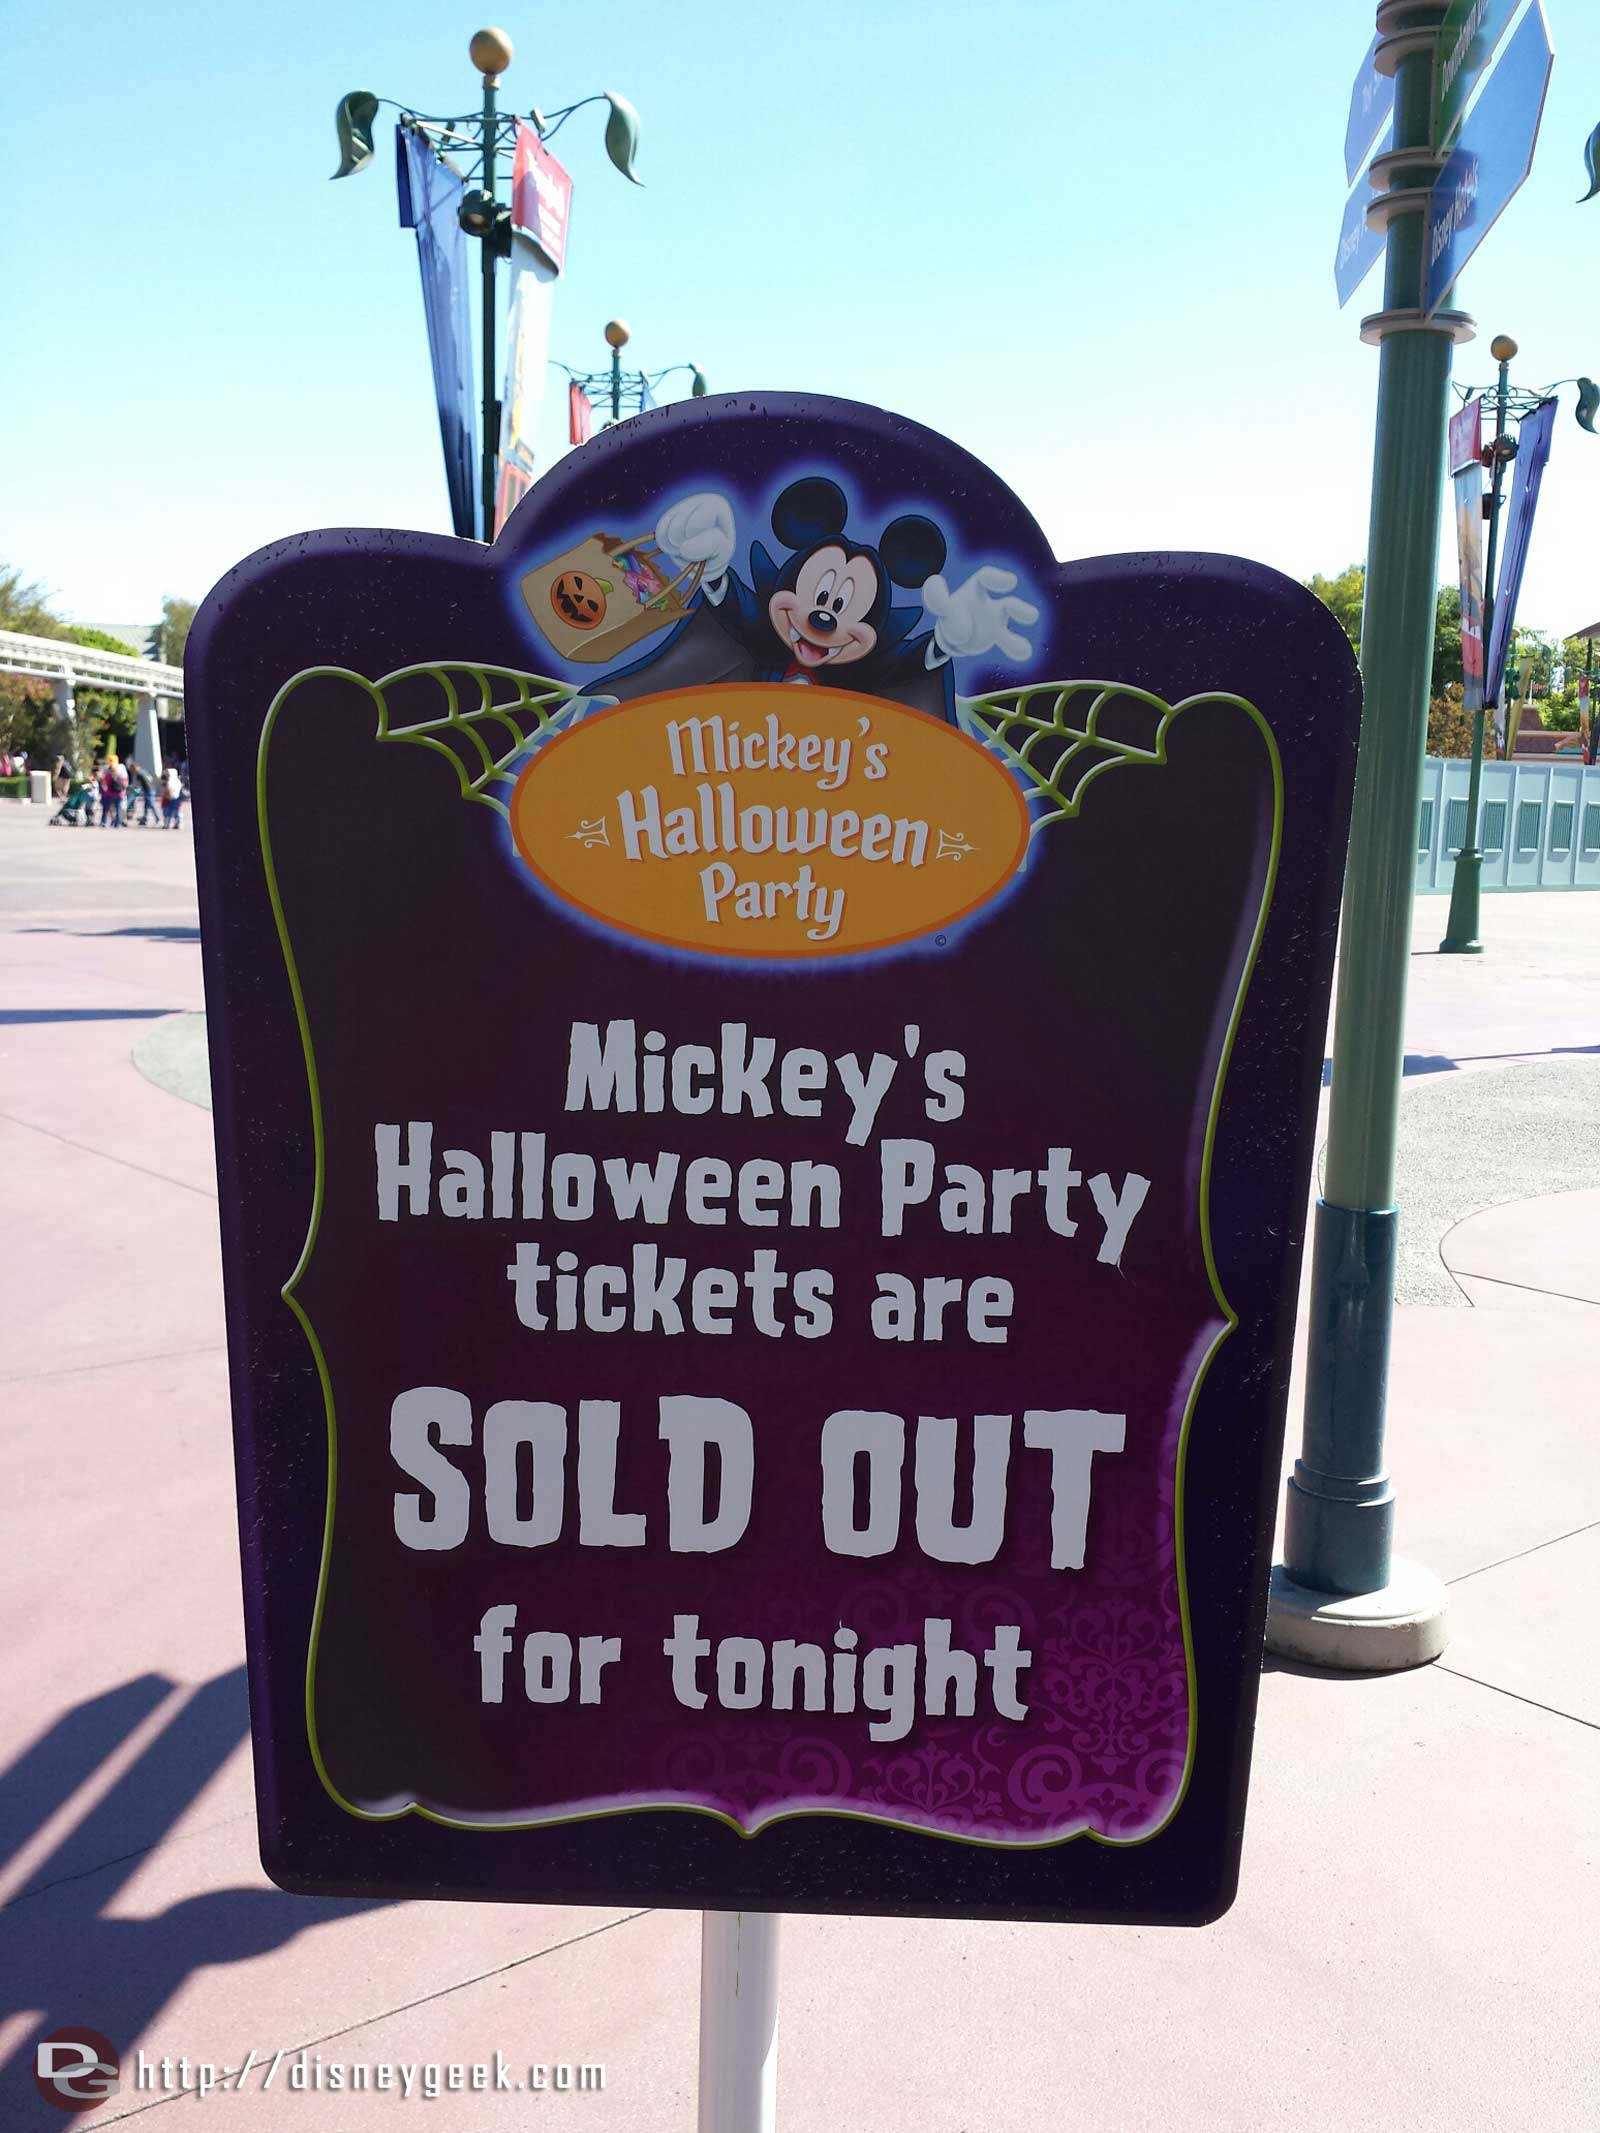 FYI Tonight's Mickey's Halloween Party is sold out #Disneyland